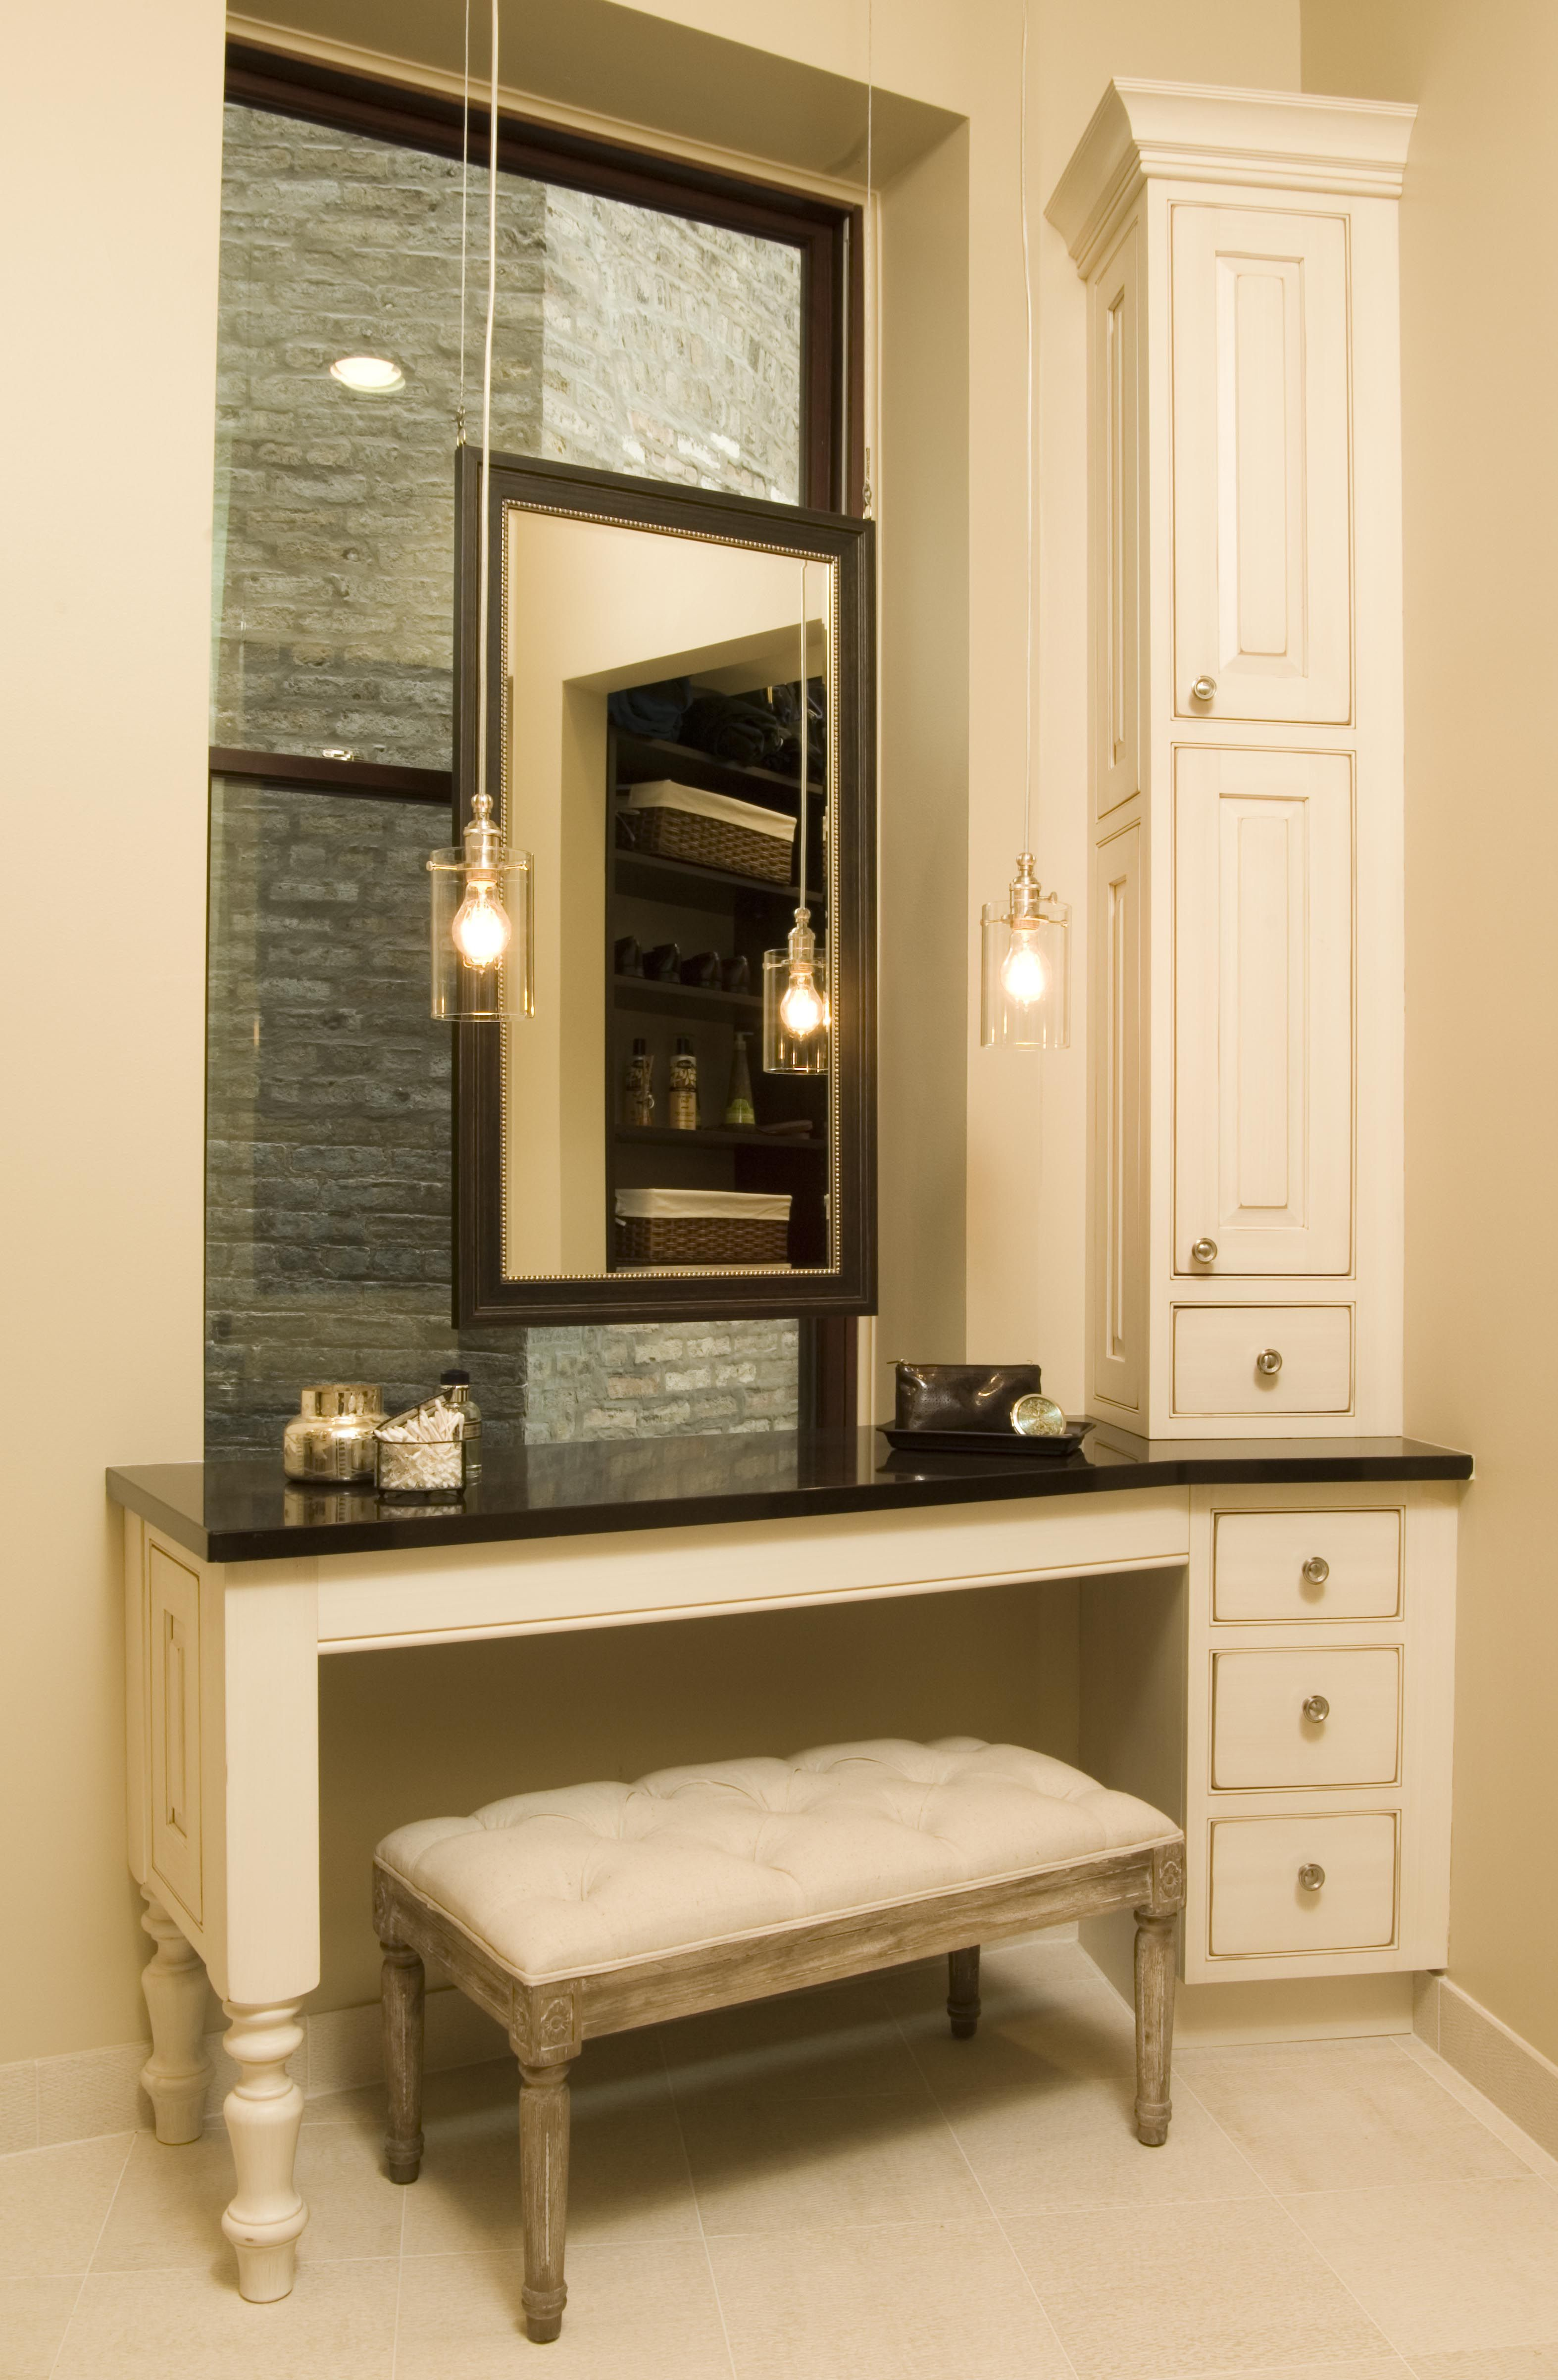 bathroom vanities with makeup table. Make-up Vanity By DAFT INTERIORS Bathroom Vanities With Makeup Table I